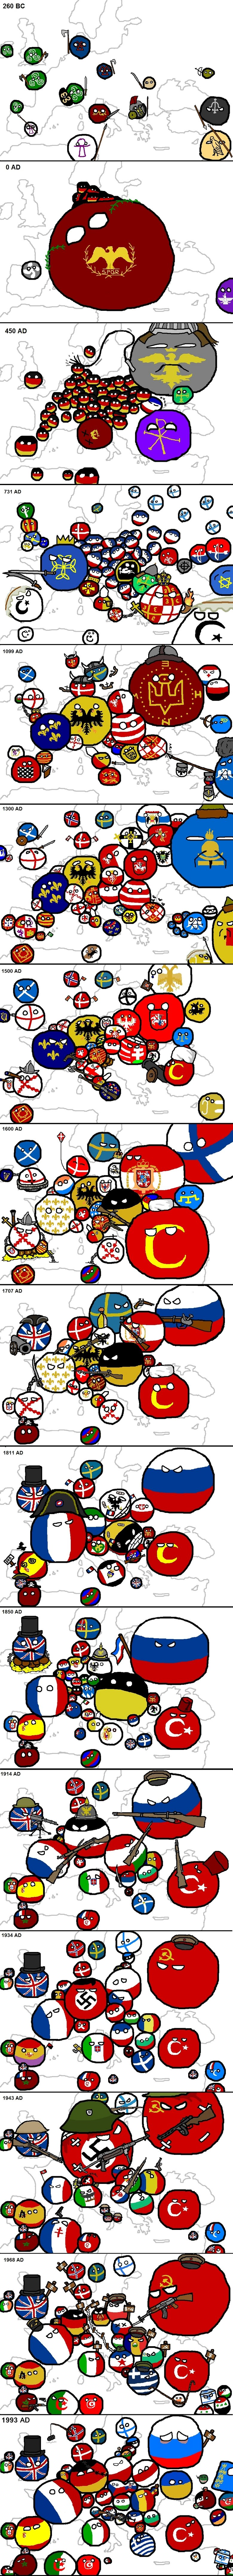 Europe through the ages. not mine.. Everyone always forgets about Andorra...